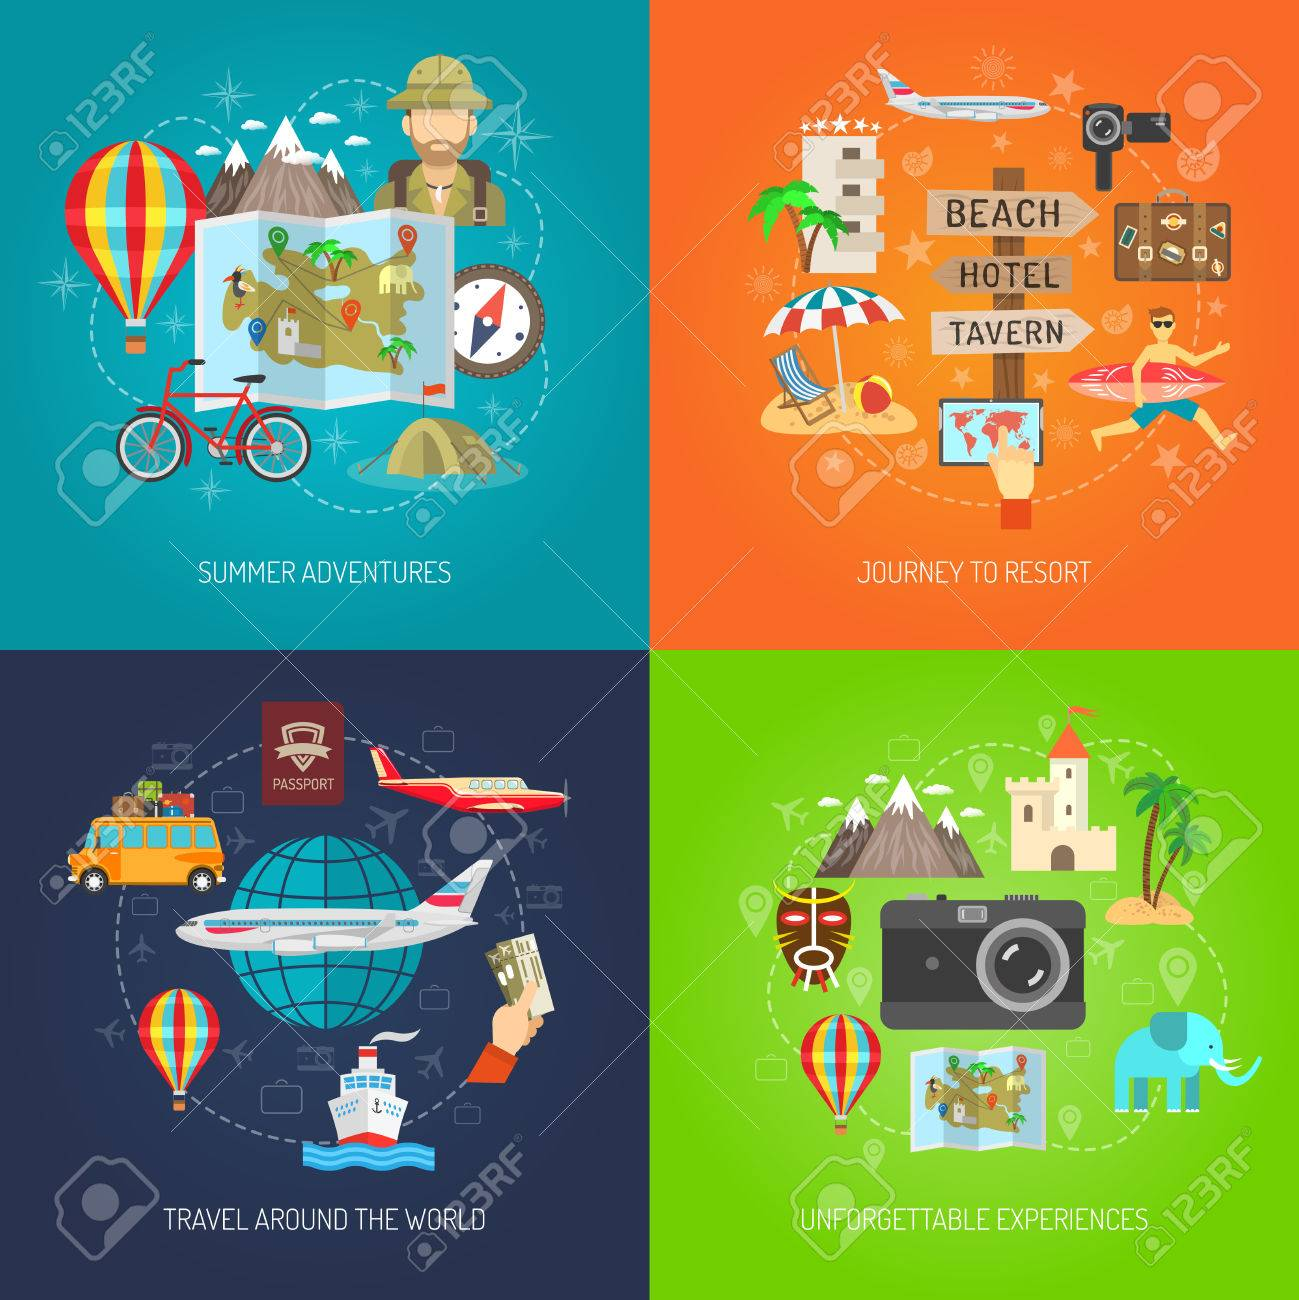 Summer adventure journey to resort and travel around world flat color decorative icon set isolated vector illustration - 42623905